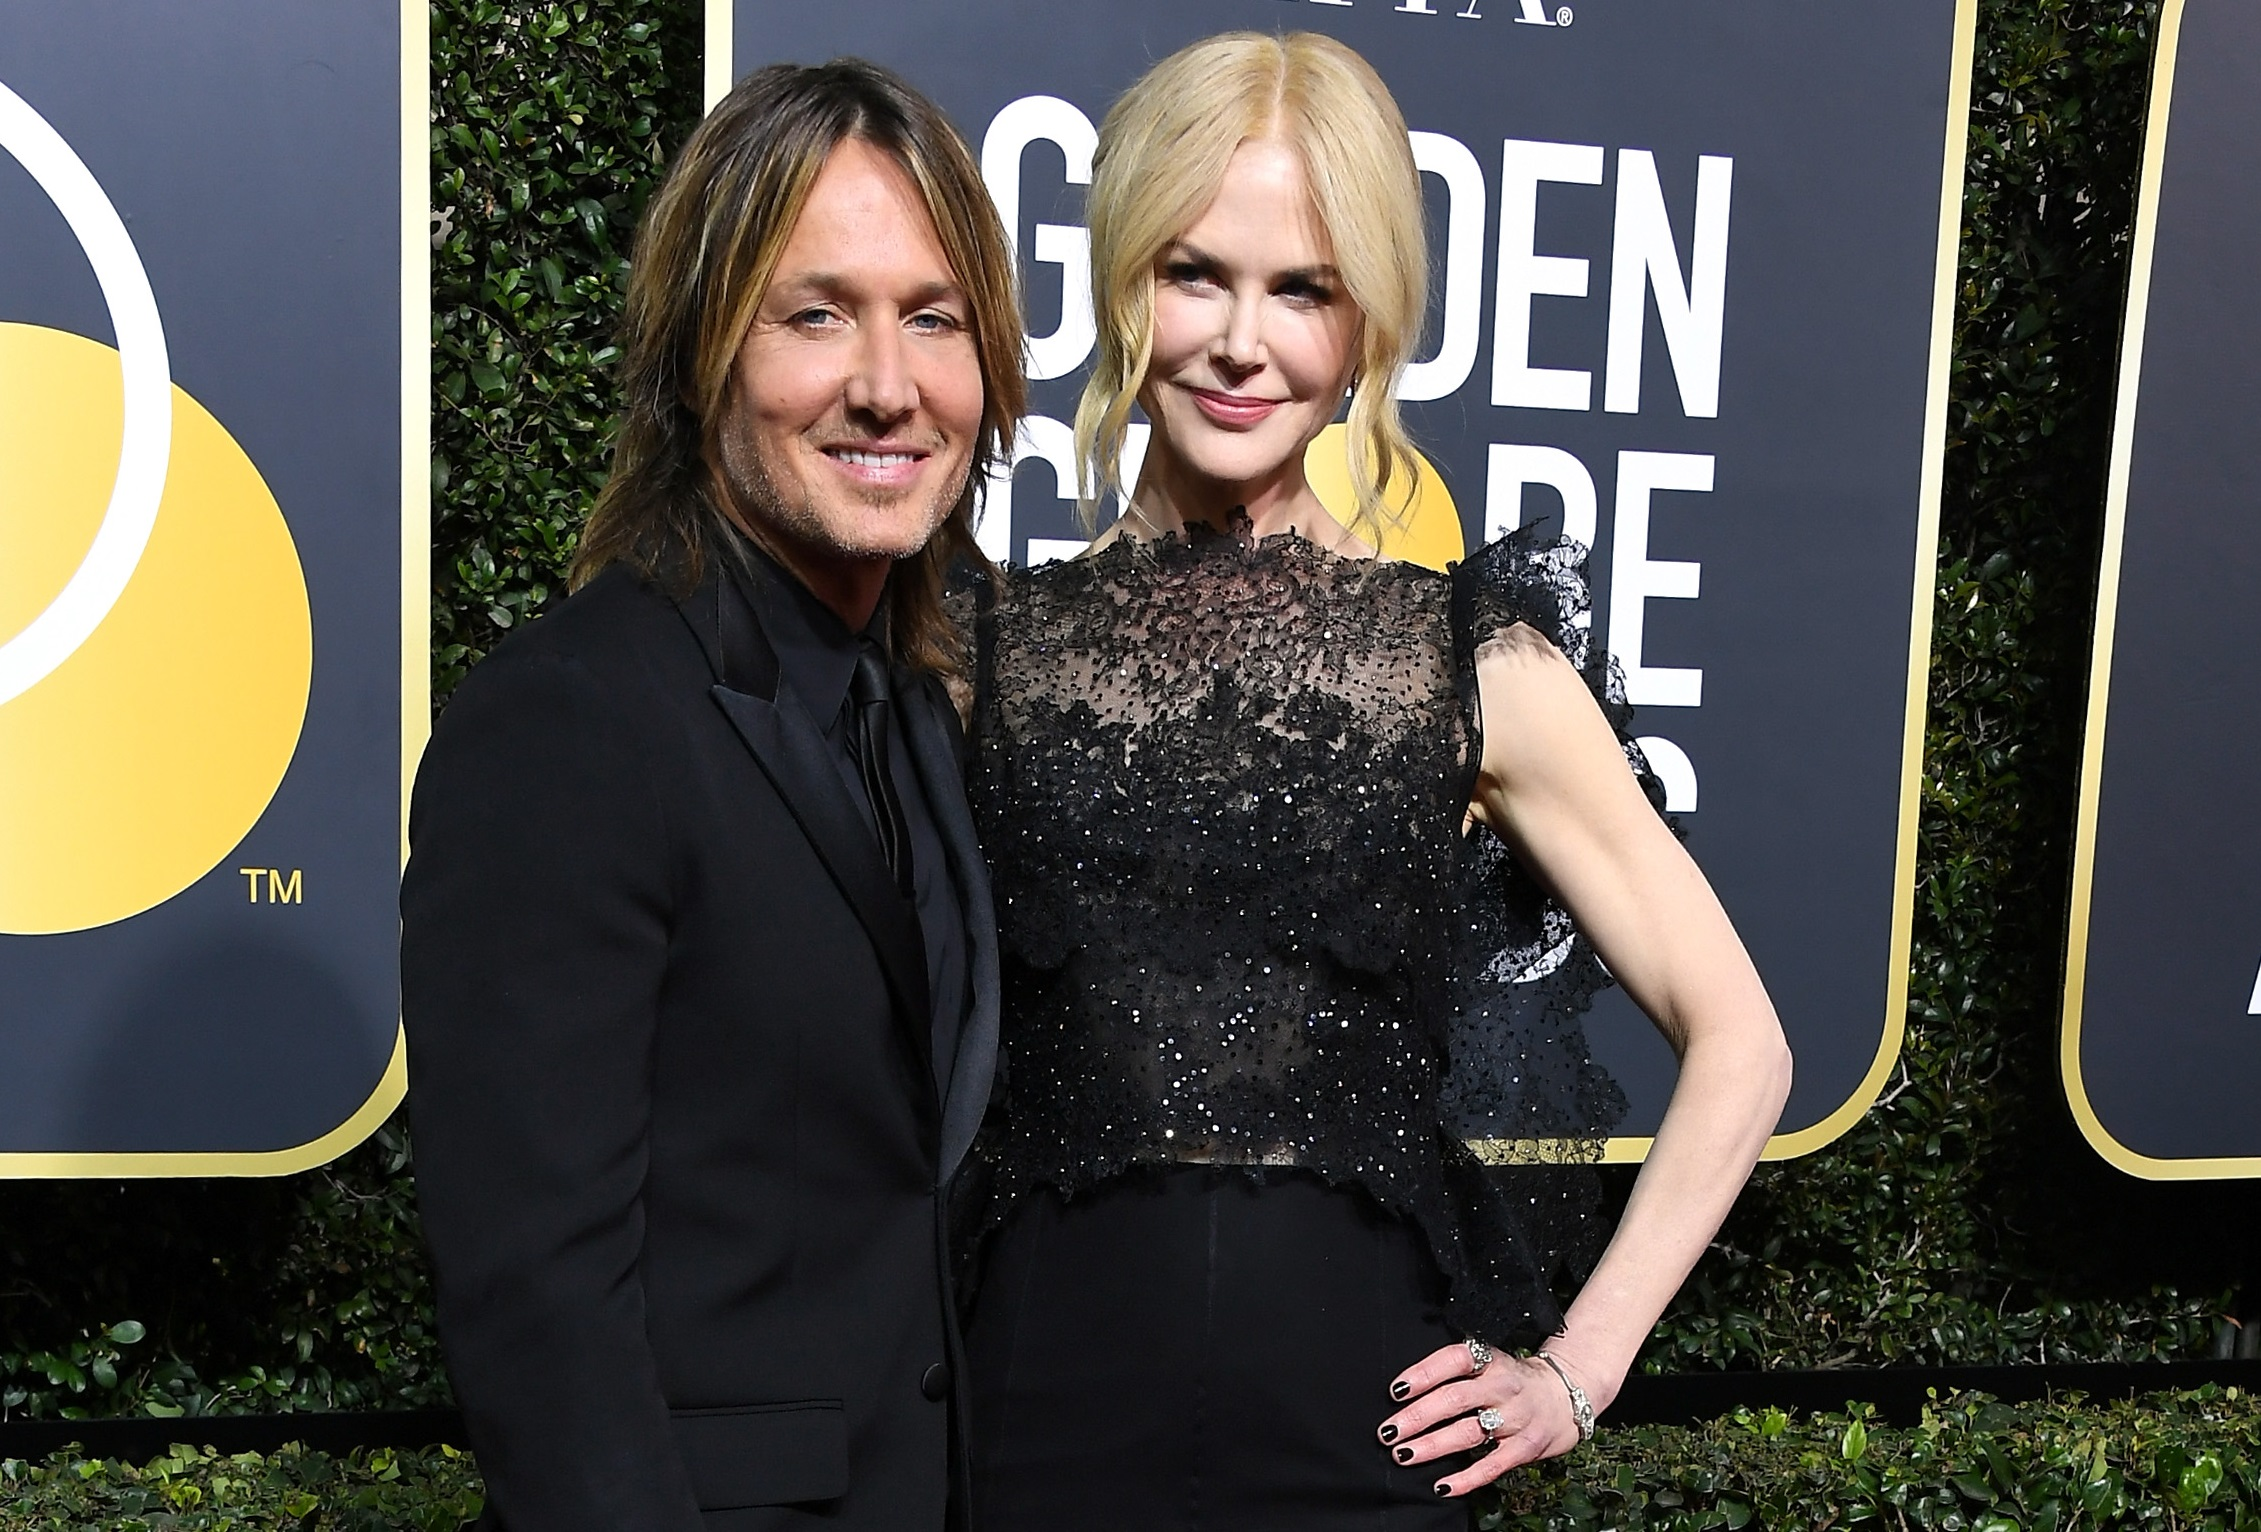 Keith Urban and Nicole Kidman's Daughters Are Passionate About Women's Rights